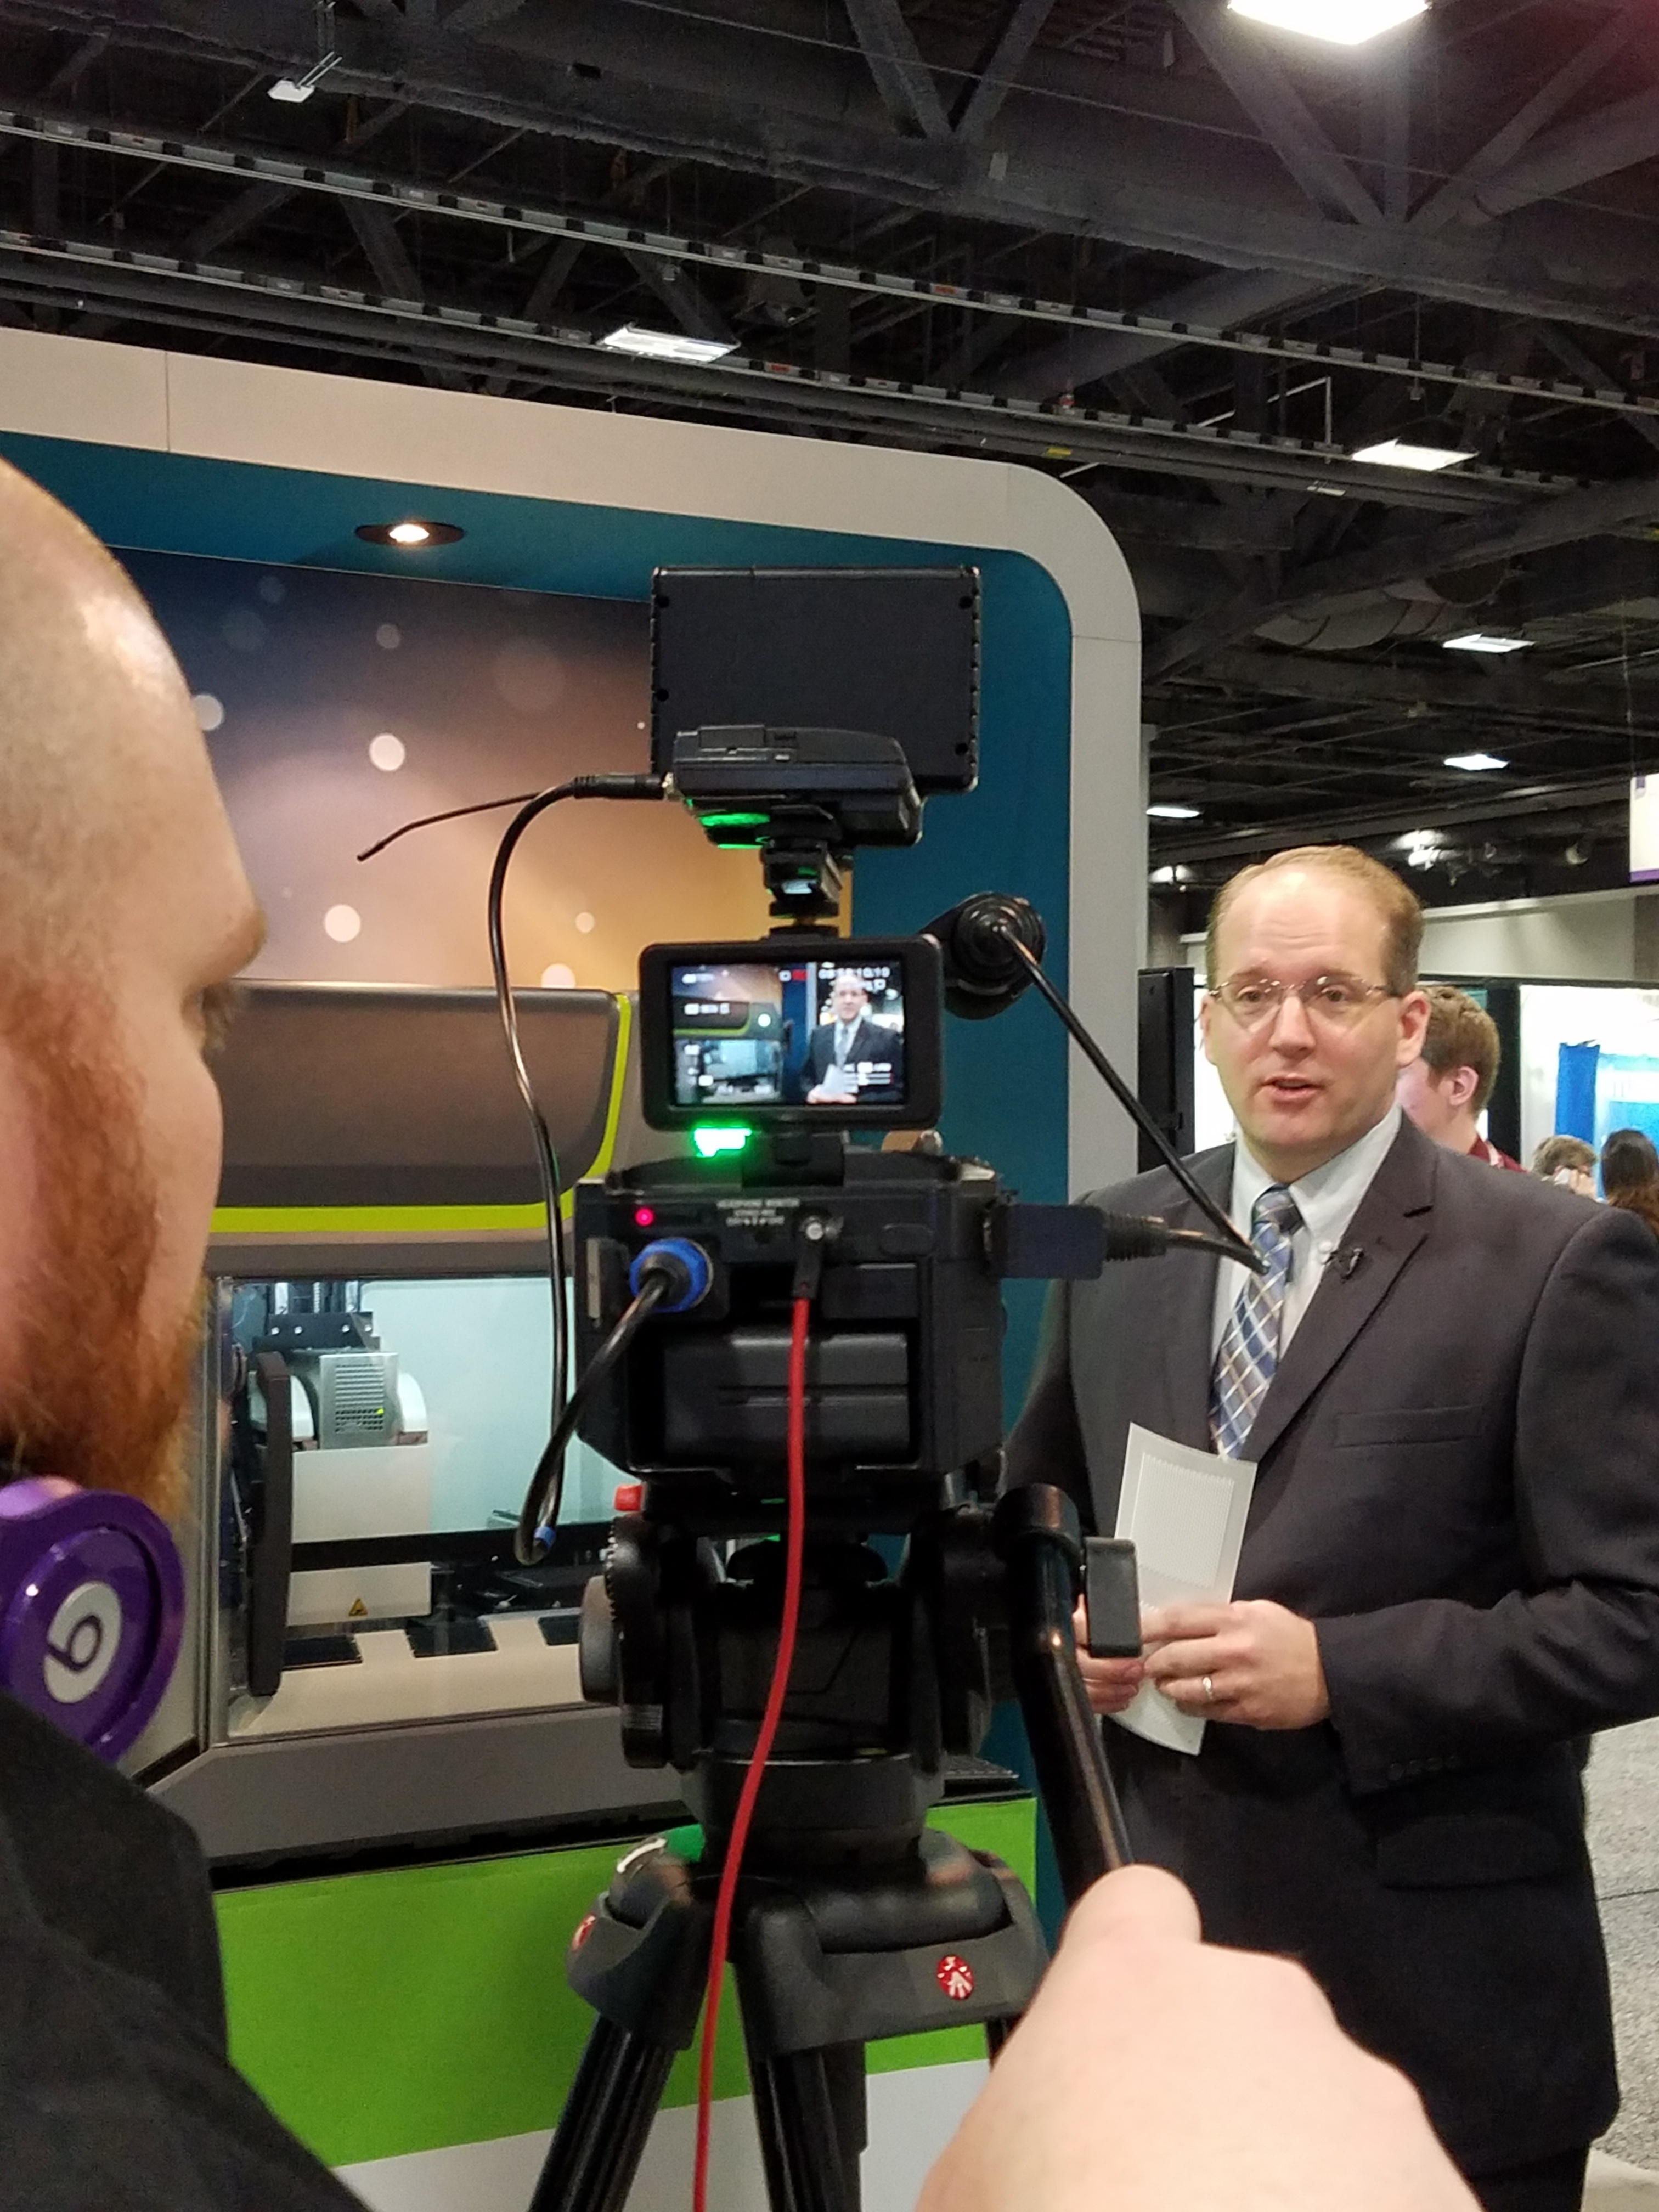 Darren Cook, VP Global Sales, LGC discusses the IntelliQube with LabTube